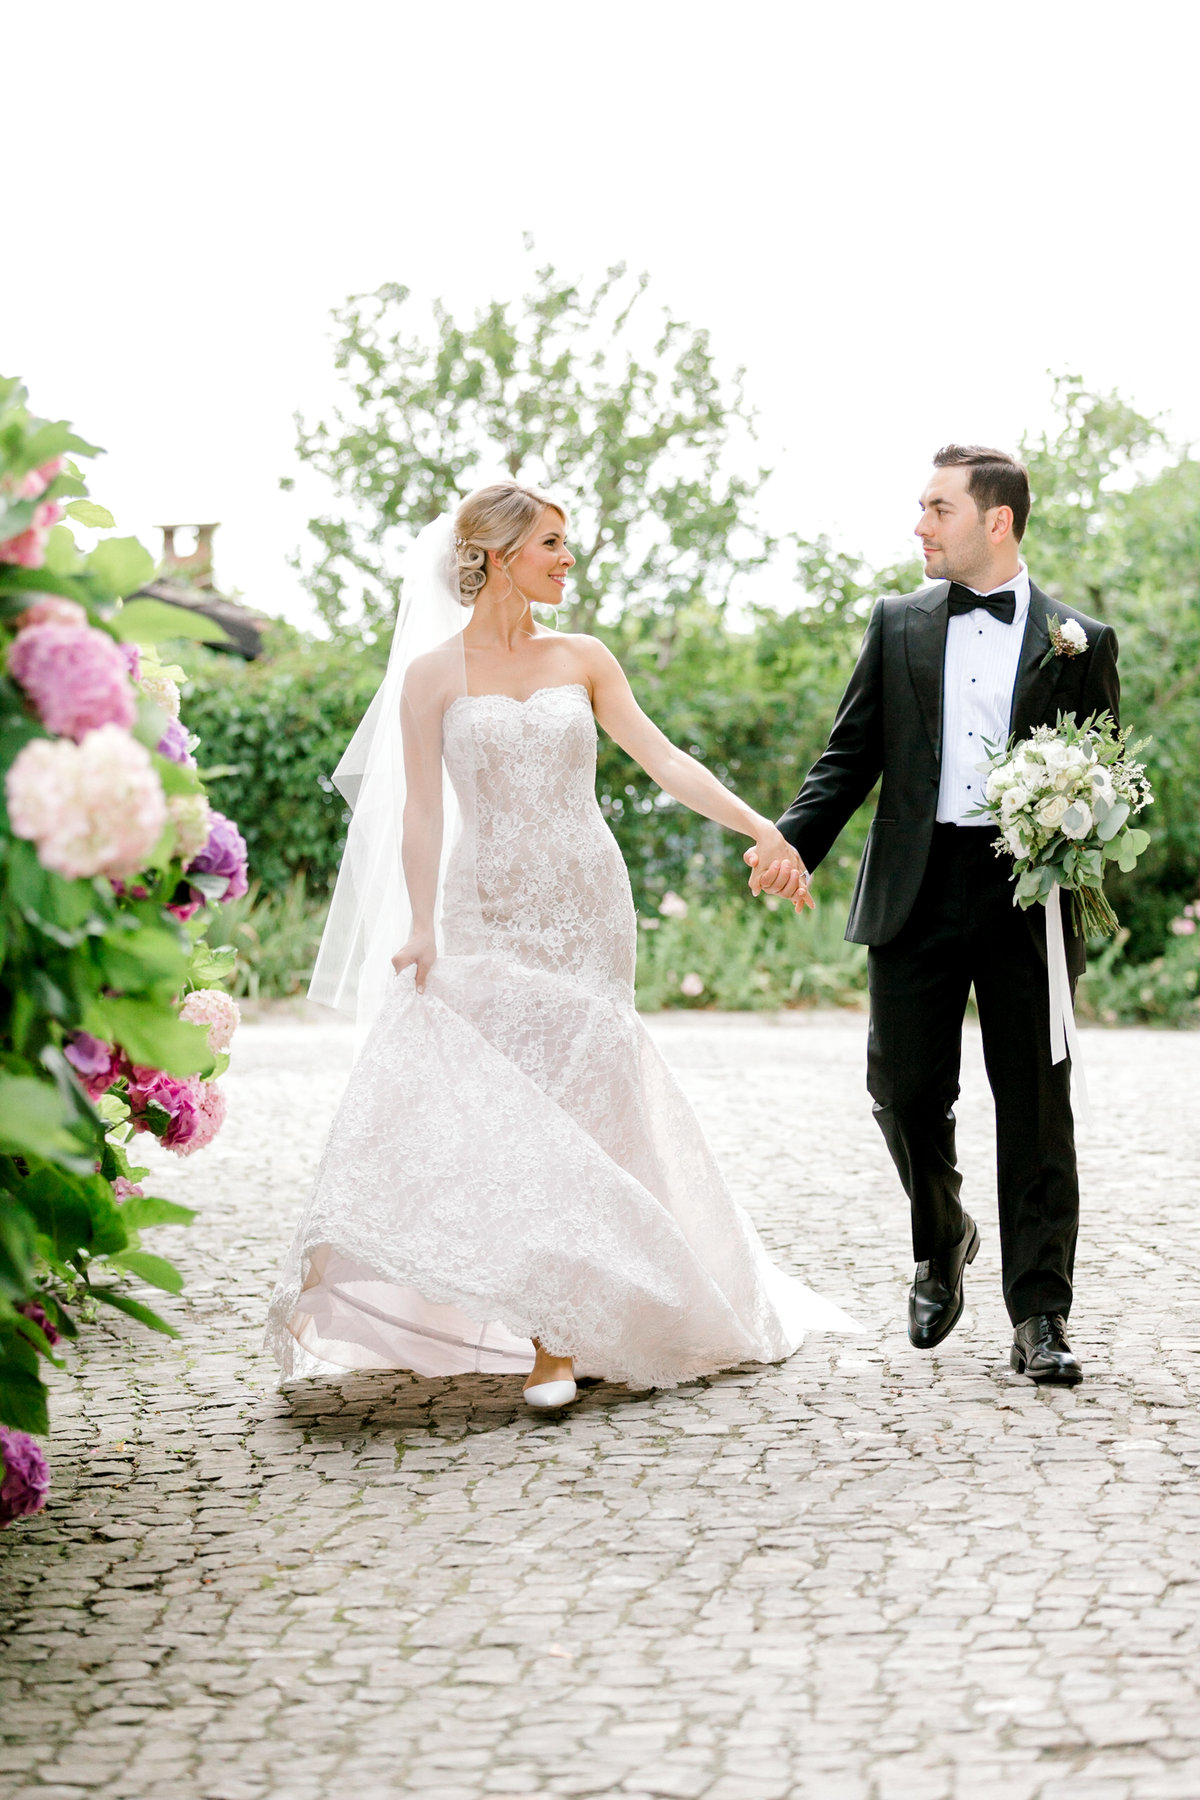 Destination-Vineyard-Italian-Wedding-New-York-Photographer-Jessica-Haley-Photo-27